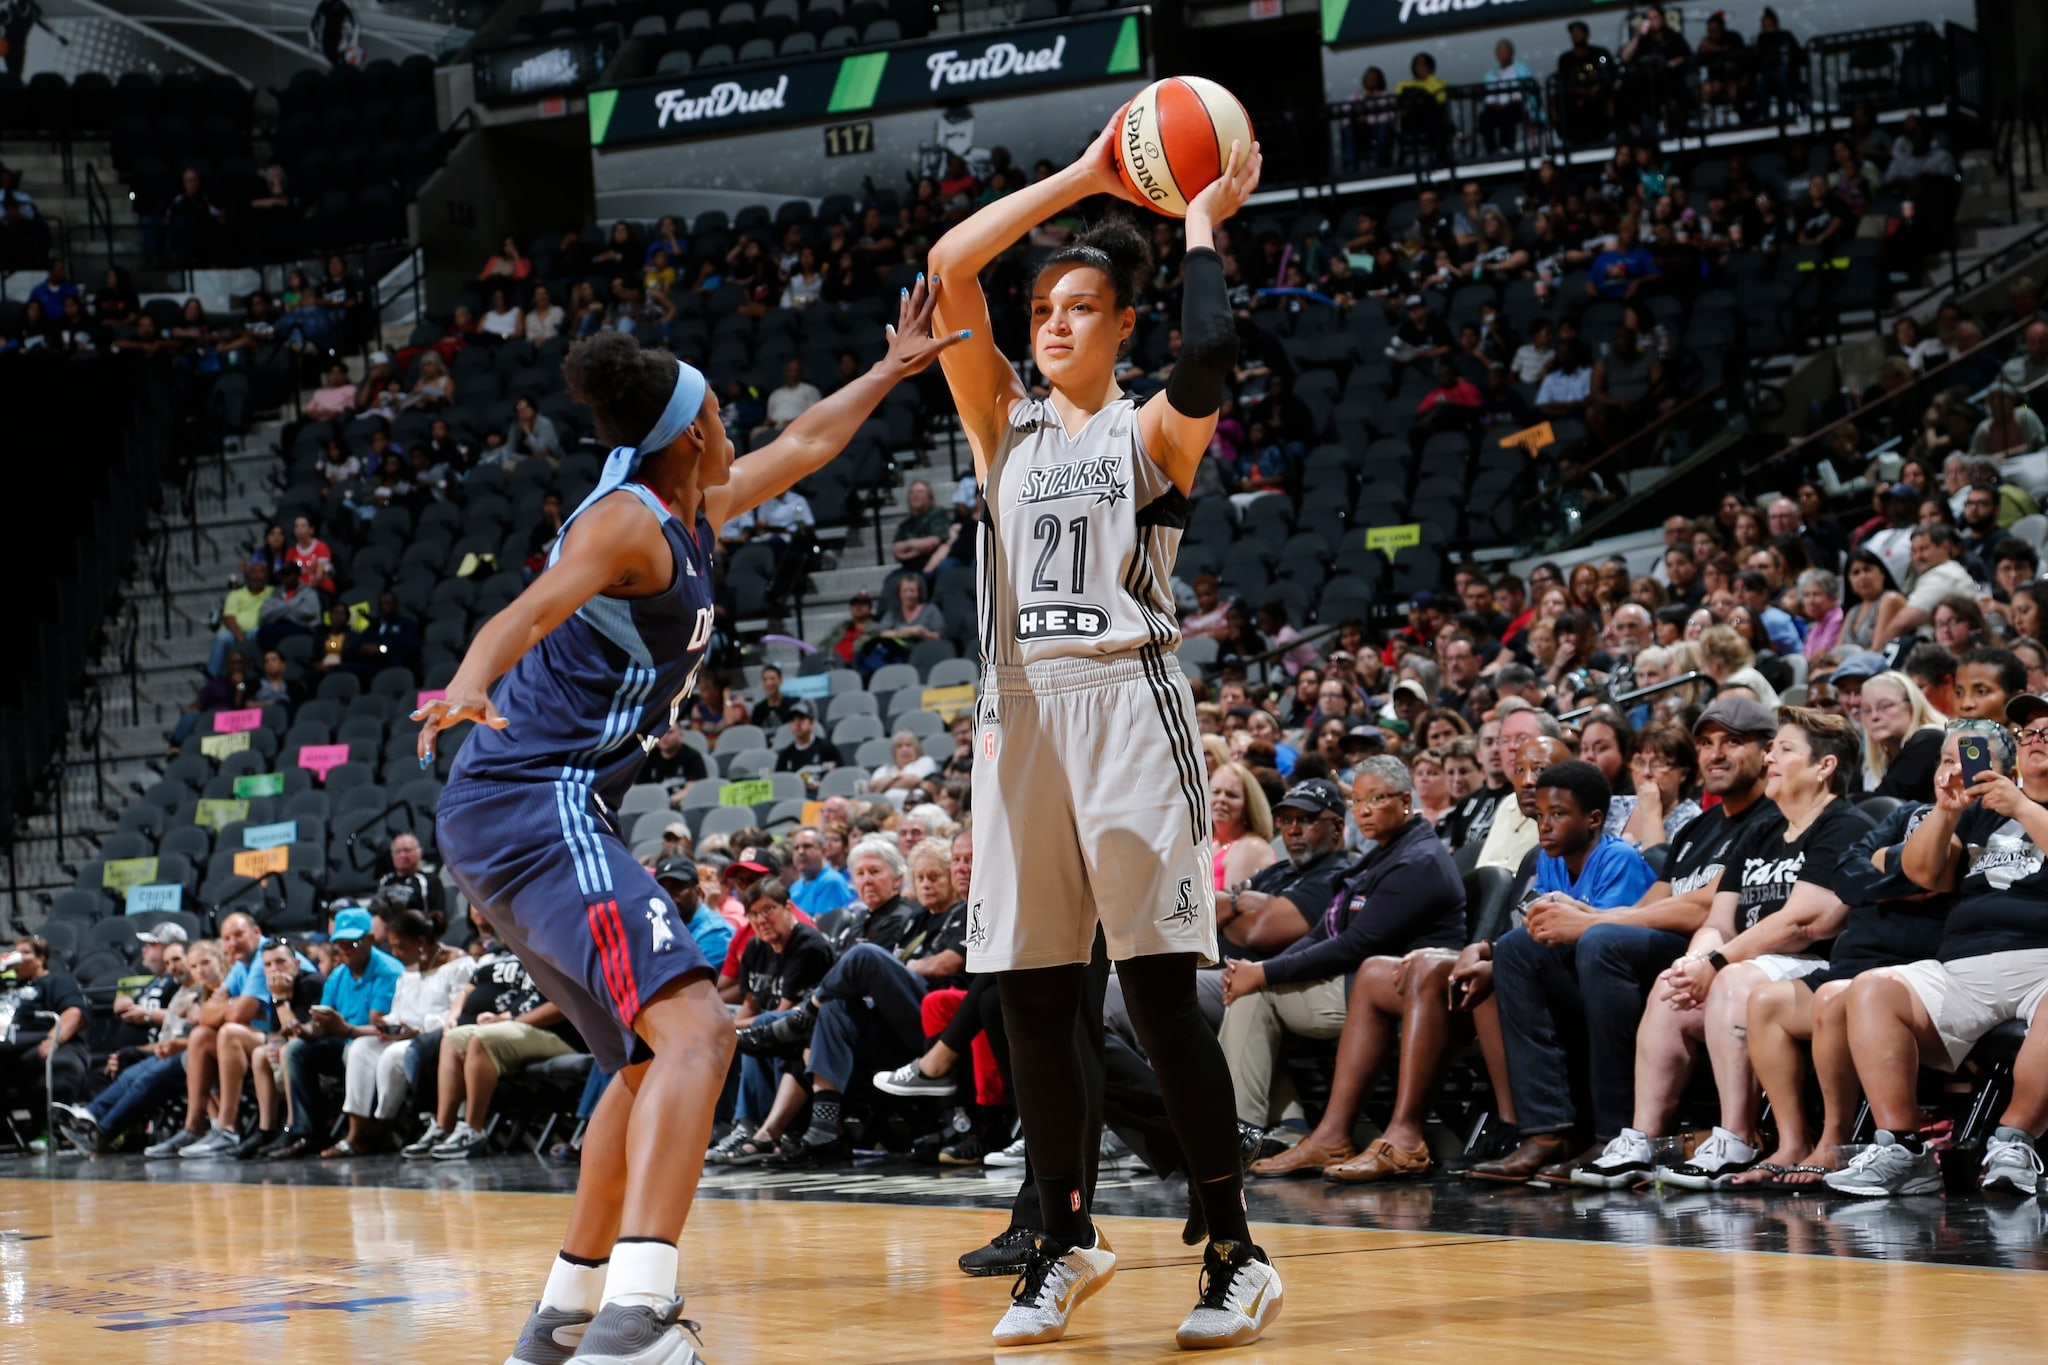 SAN ANTONIO, TX - MAY 14: Kayla McBride #21 of the San Antonio Stars defends the ball against the Atlanta Dream during the game on May 14, 2016 at AT&T Center in San Antonio, Texas. NOTE TO USER: User expressly acknowledges and agrees that, by downloading and or using this Photograph, user is consenting to the terms and conditions of the Getty Images License Agreement. Mandatory Copyright Notice: Copyright 2016 NBAE (Photo by Chris Covatta/NBAE via Getty Images)